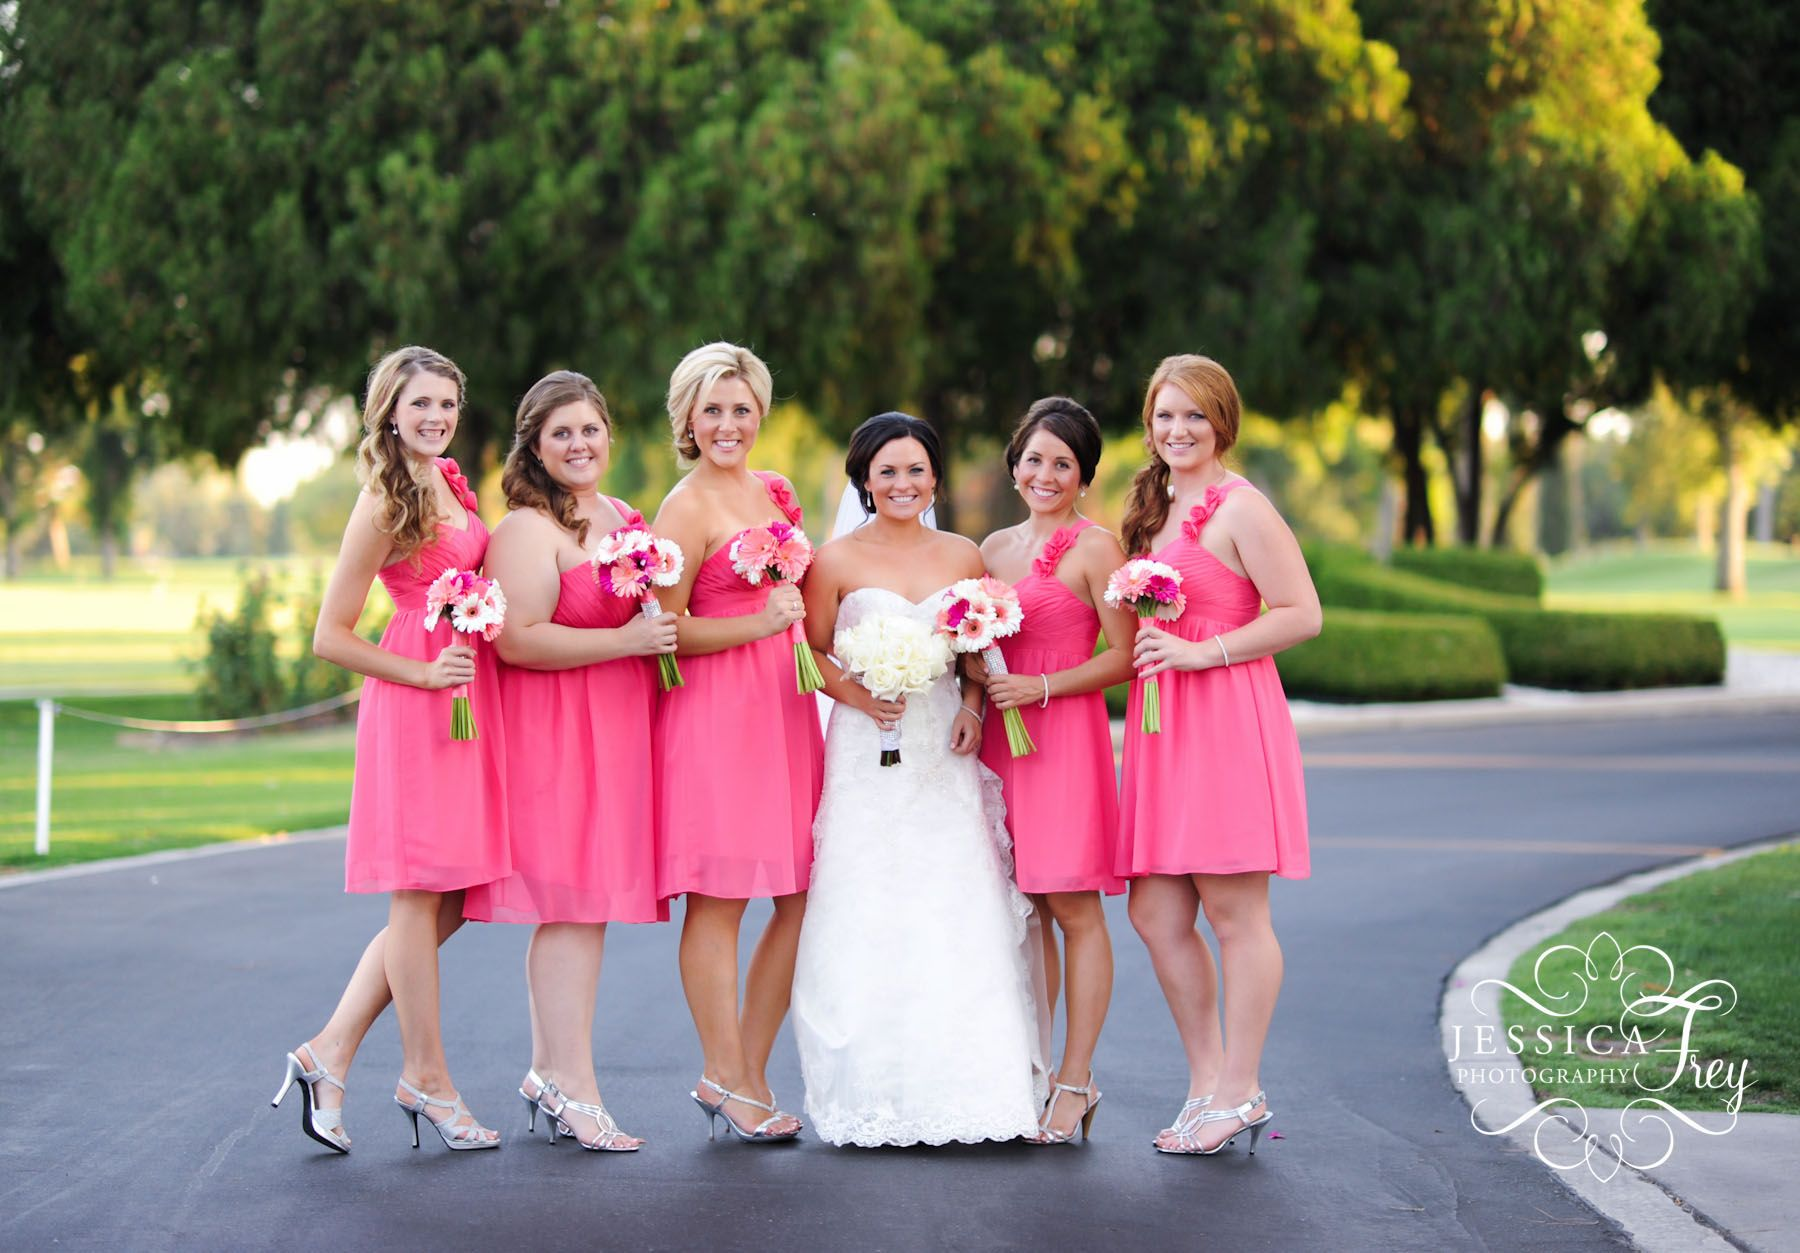 Wedding wednesday bridesmaid dress ideas jessica frey wedding pink is the most popular color for bridesmaid and flower girl dresses if your wedding color is pink then pink bridesmaid dresses will be your best choice ombrellifo Images